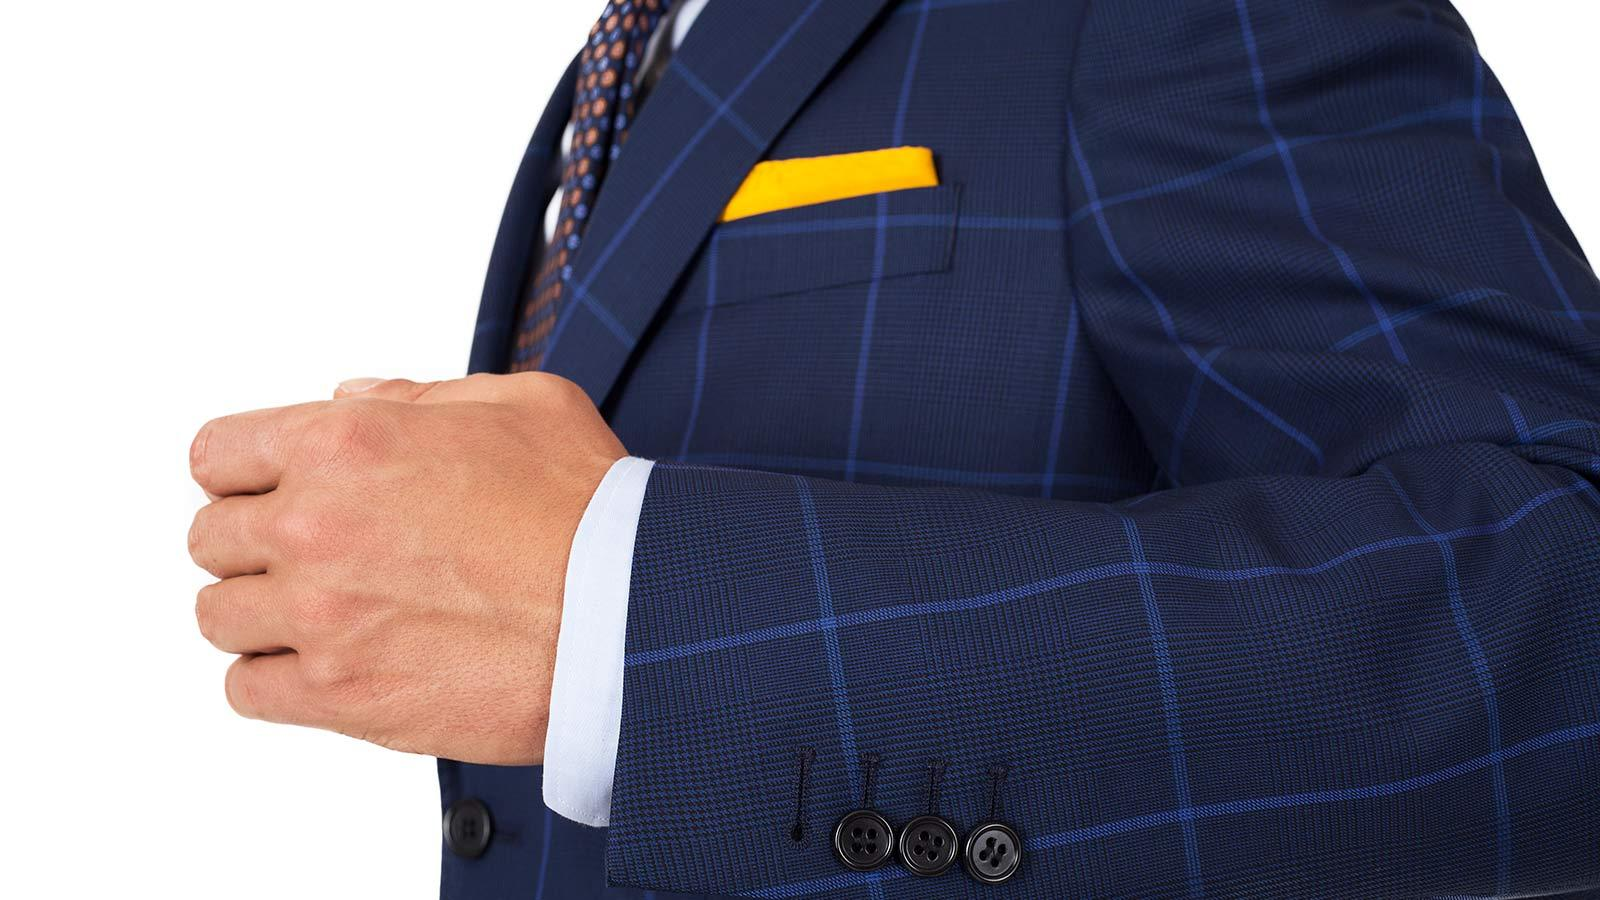 Vendetta Premium Blue Check Navy Plaid Suit - slider image 1